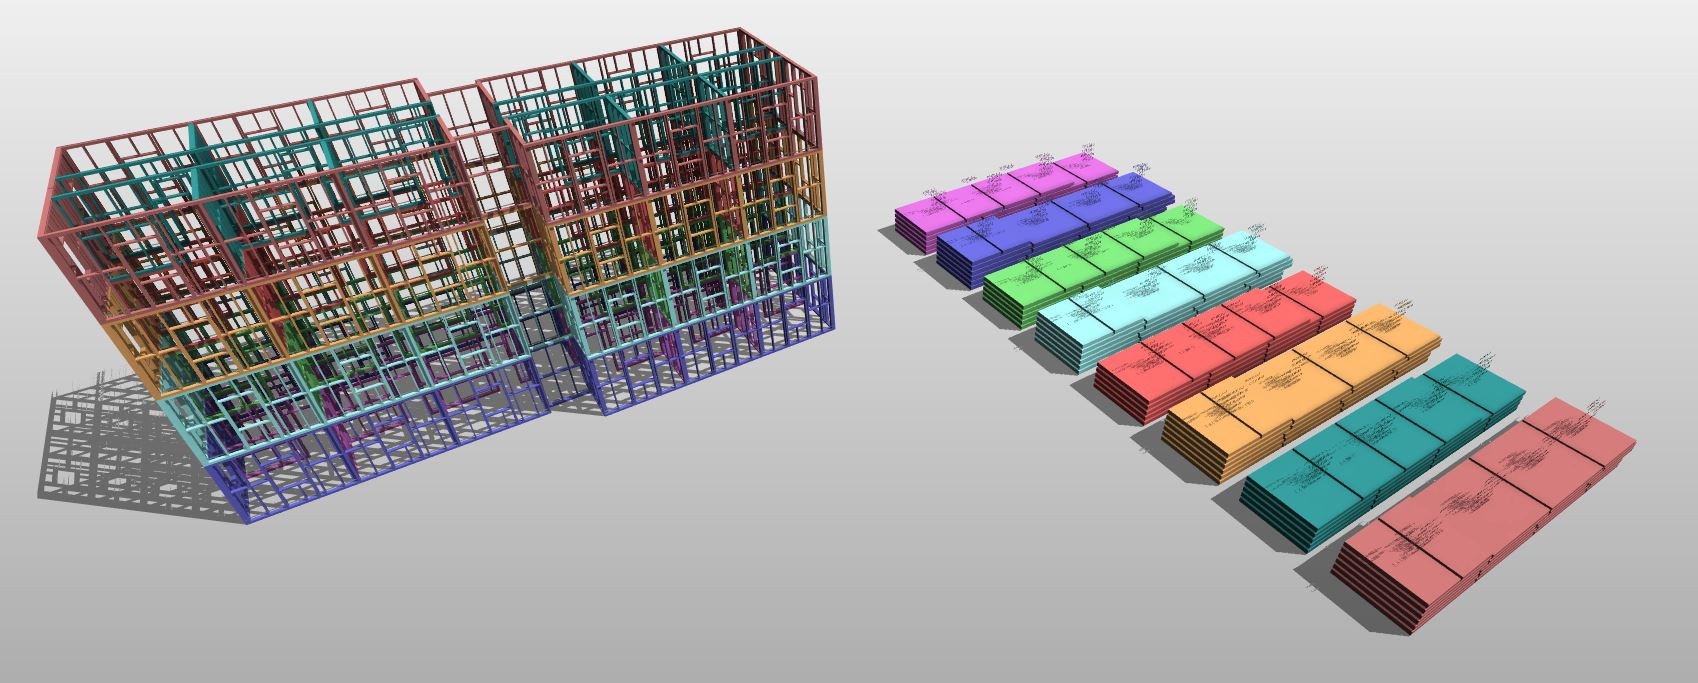 Panelized walls of a framed building in Revit